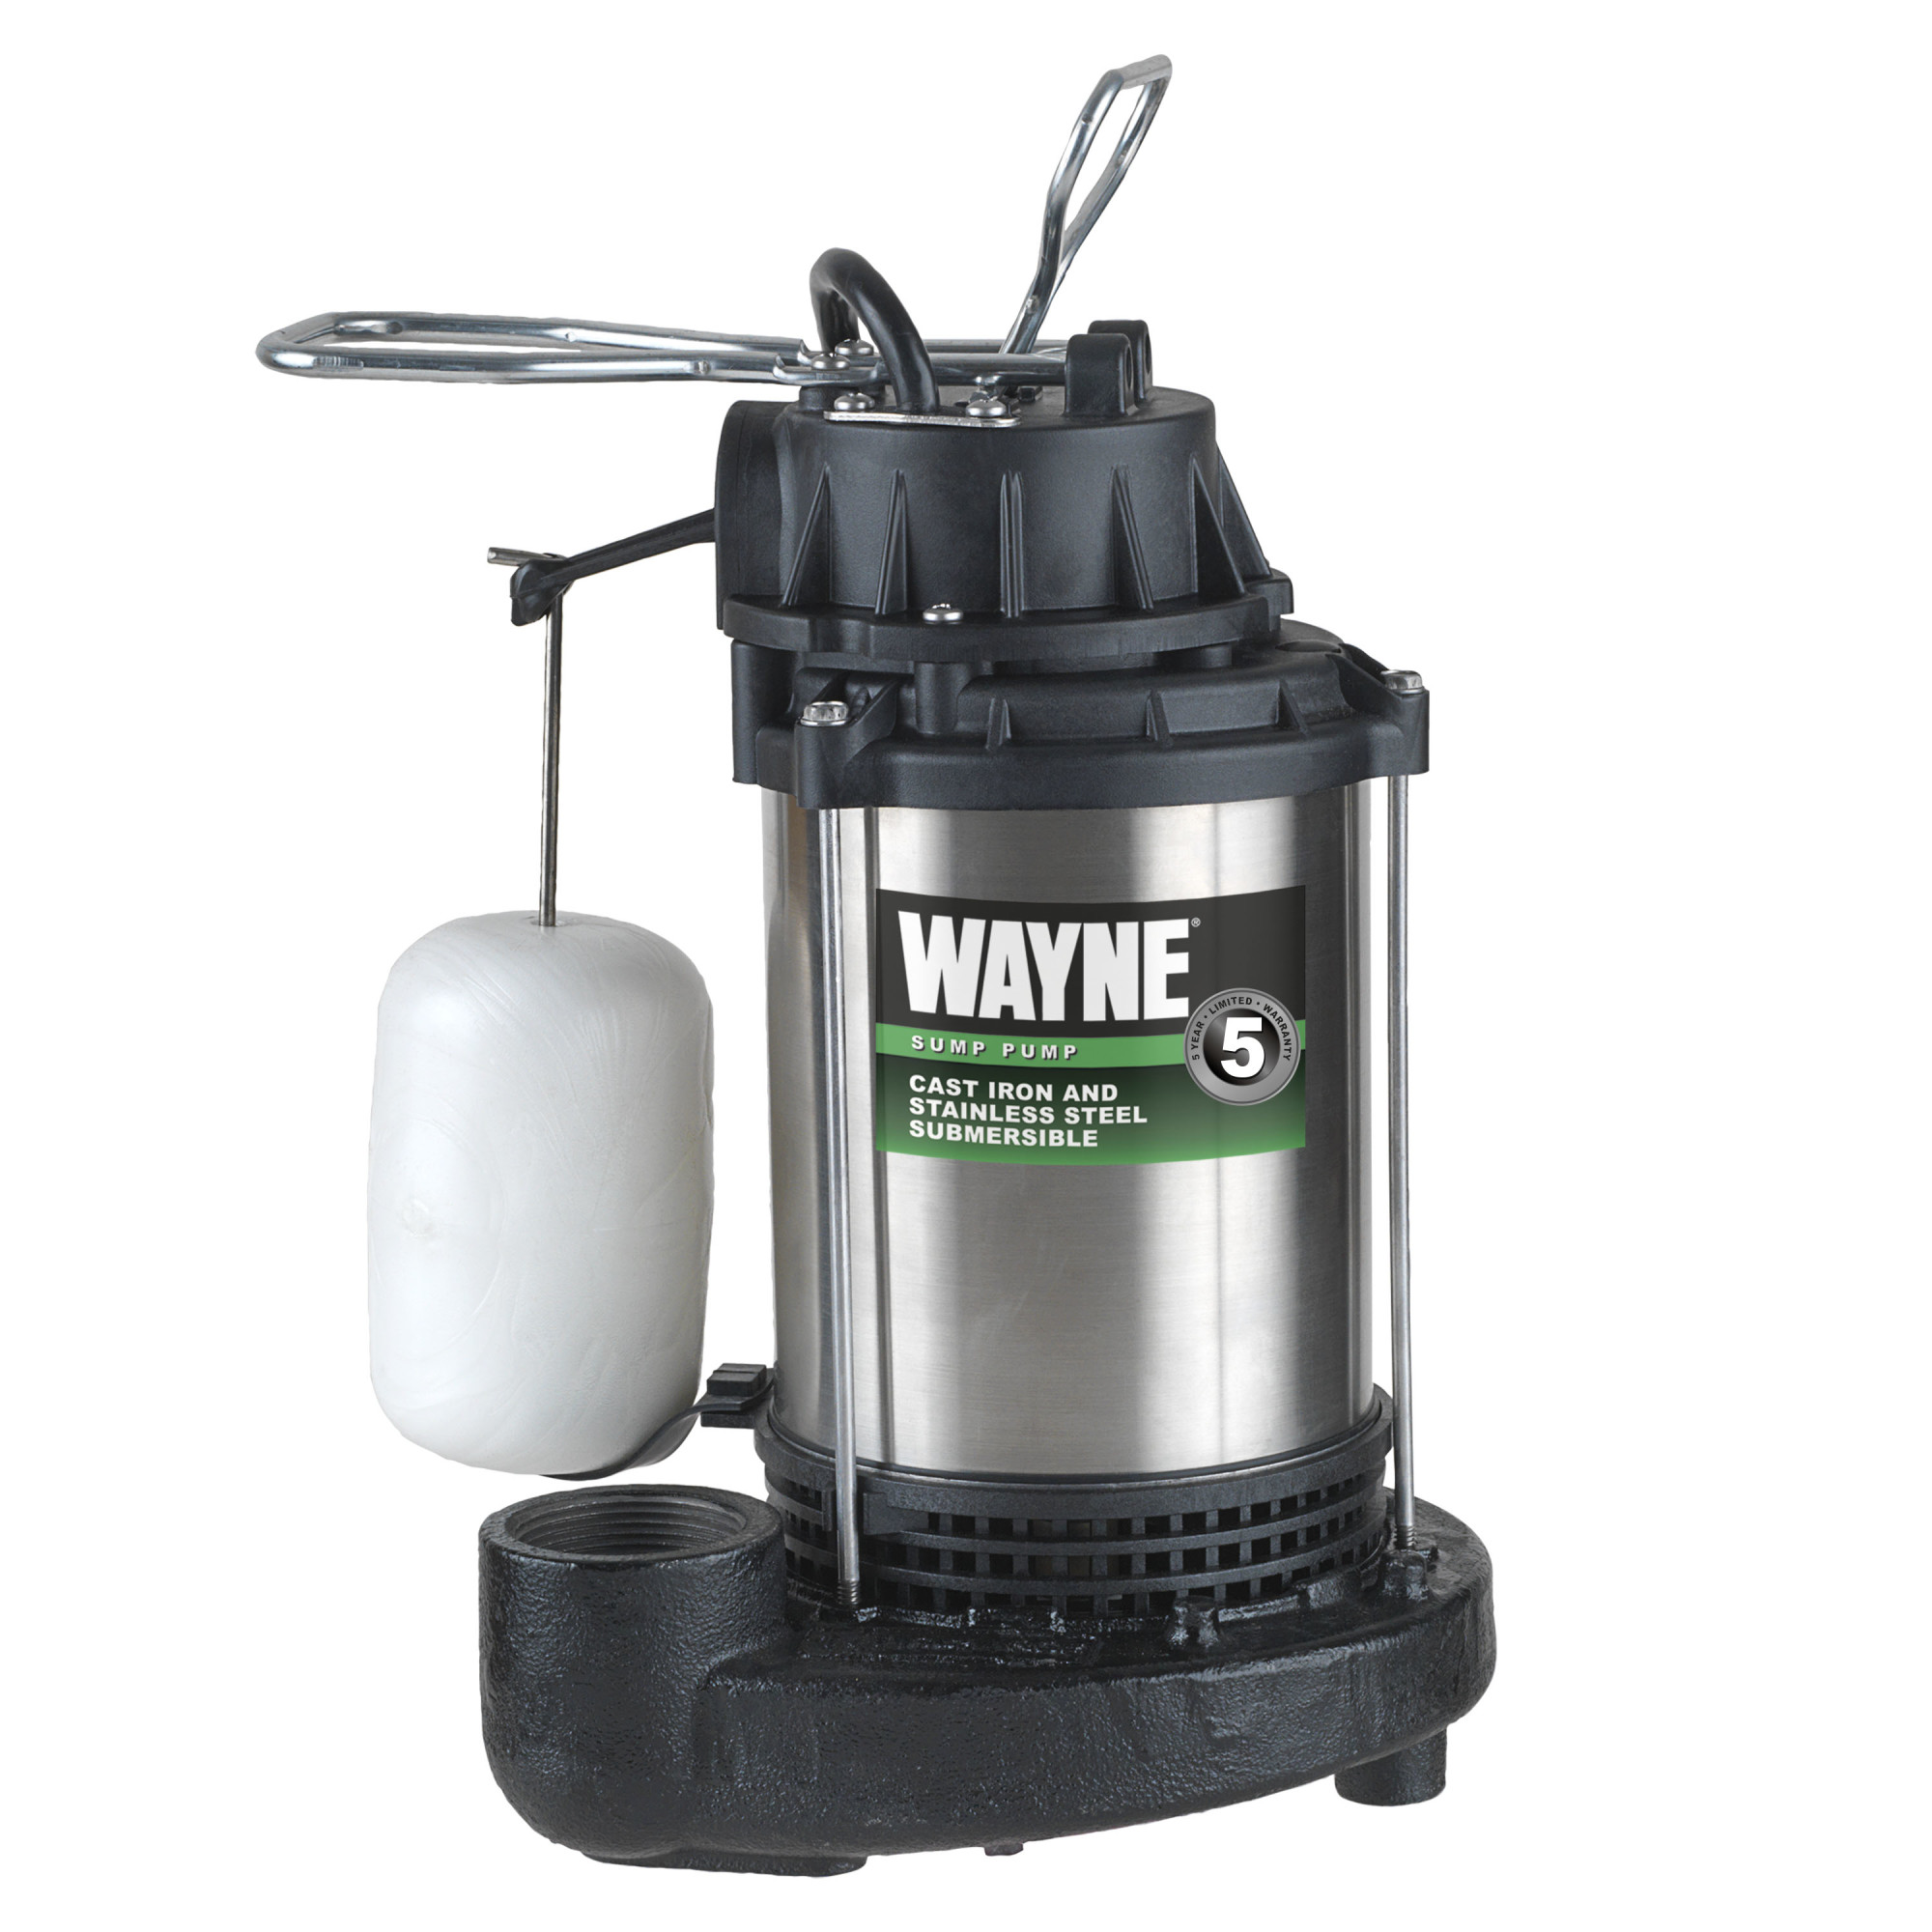 WAYNE CDU1000 1 HP Stainless Steel Sump Pump